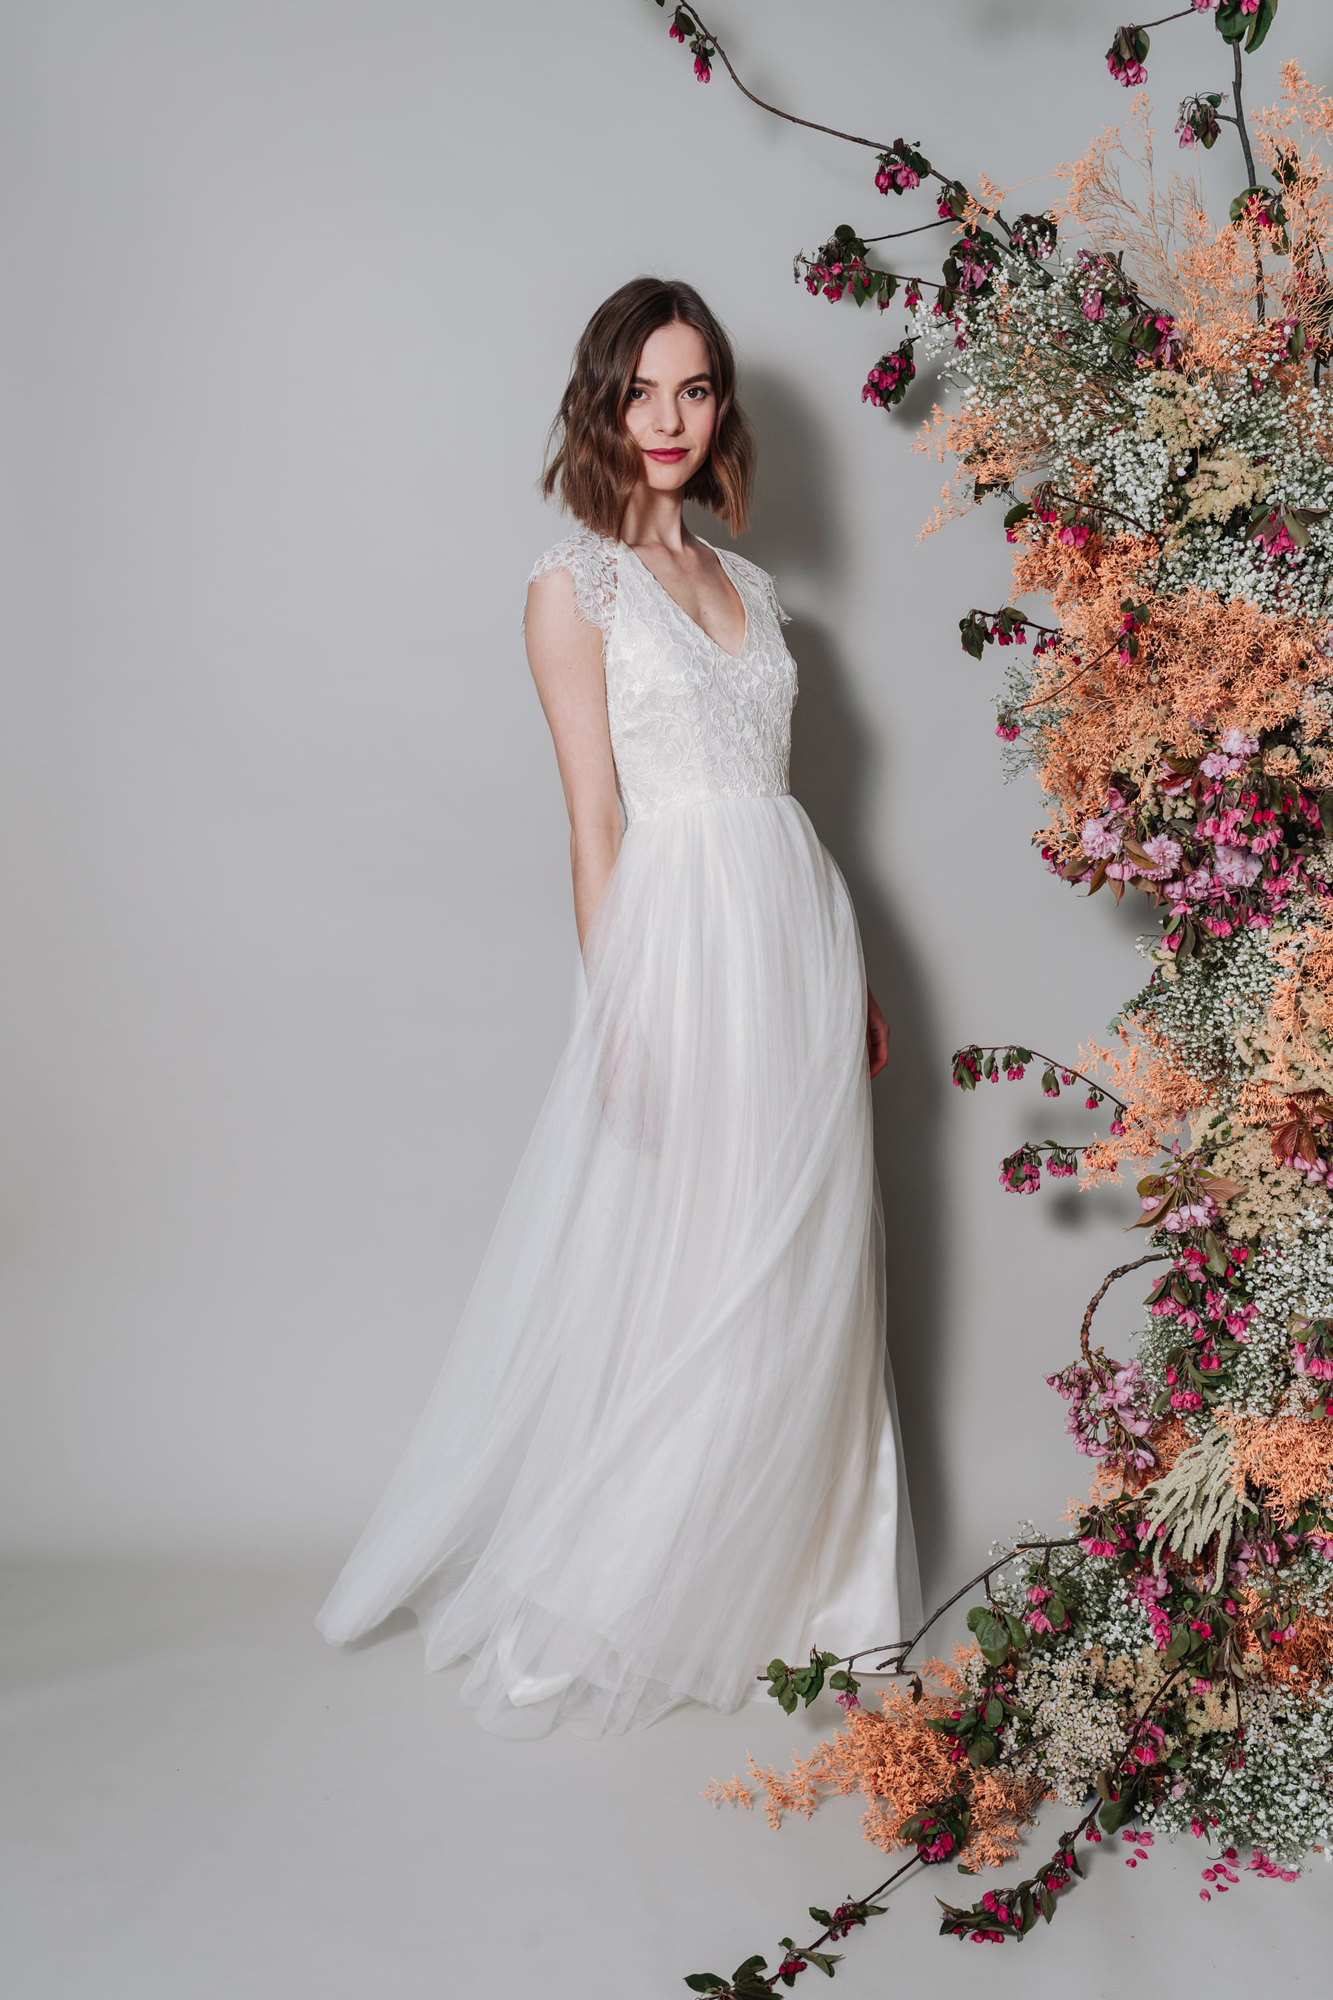 Kate-Beaumont-Sheffield-Mimosa-Lace-Tulle-Bohemian-Wedding-Gown-3.jpg